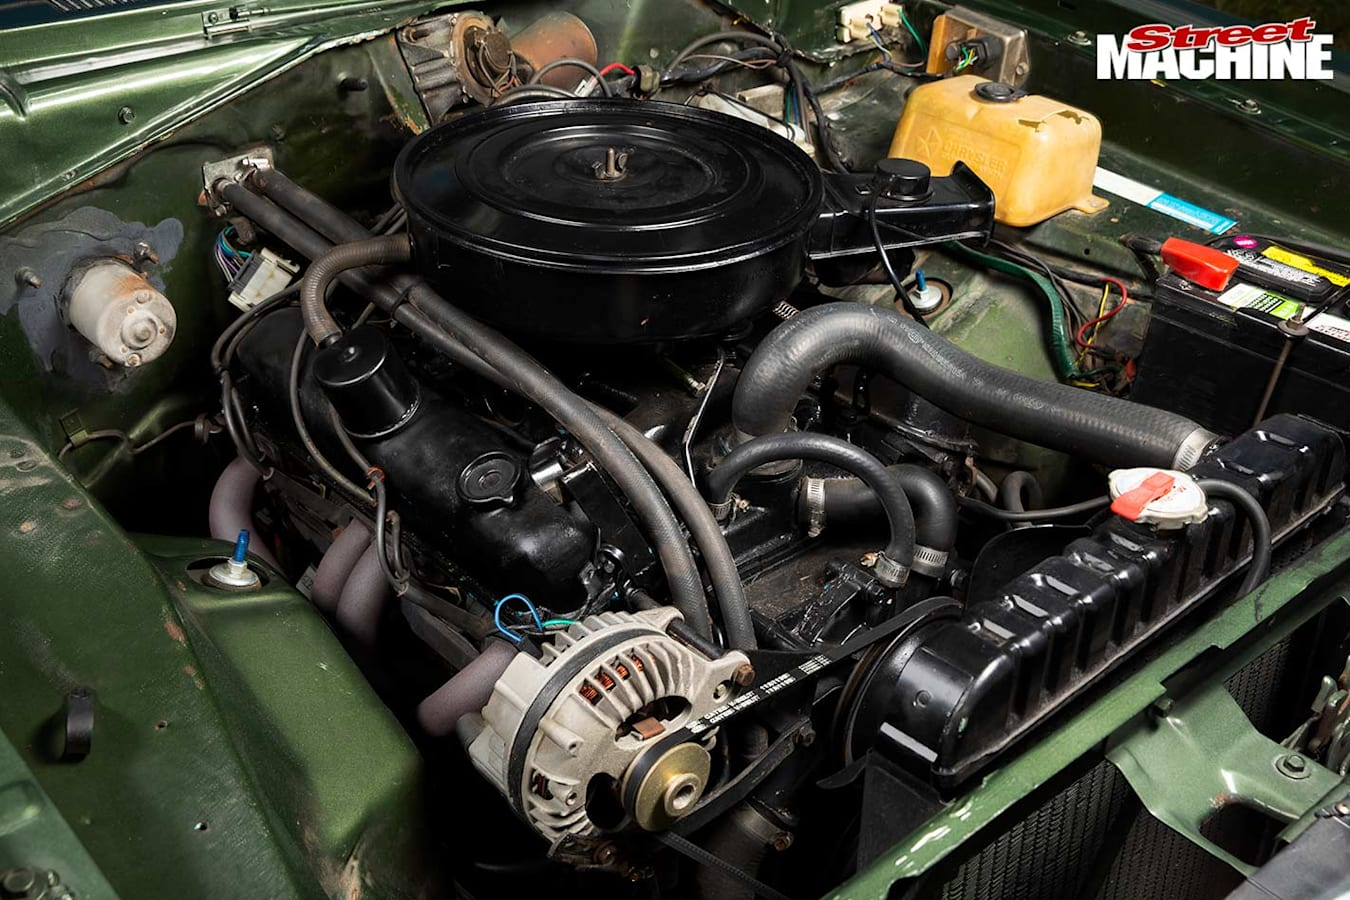 Plymouth Duster engine bay